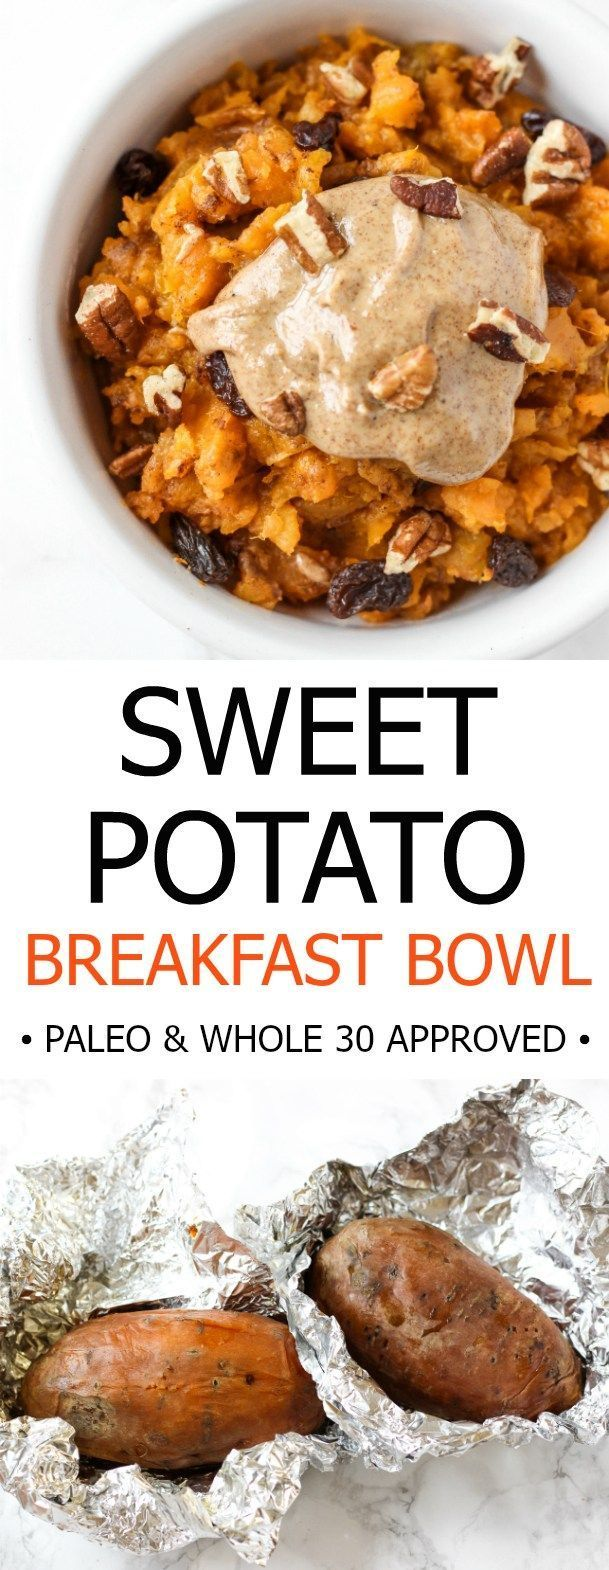 This sweet potato breakfast bowl is an easy, make-ahead healthy breakfast that reminds me of sweet potato casserole! // healthy-liv.com